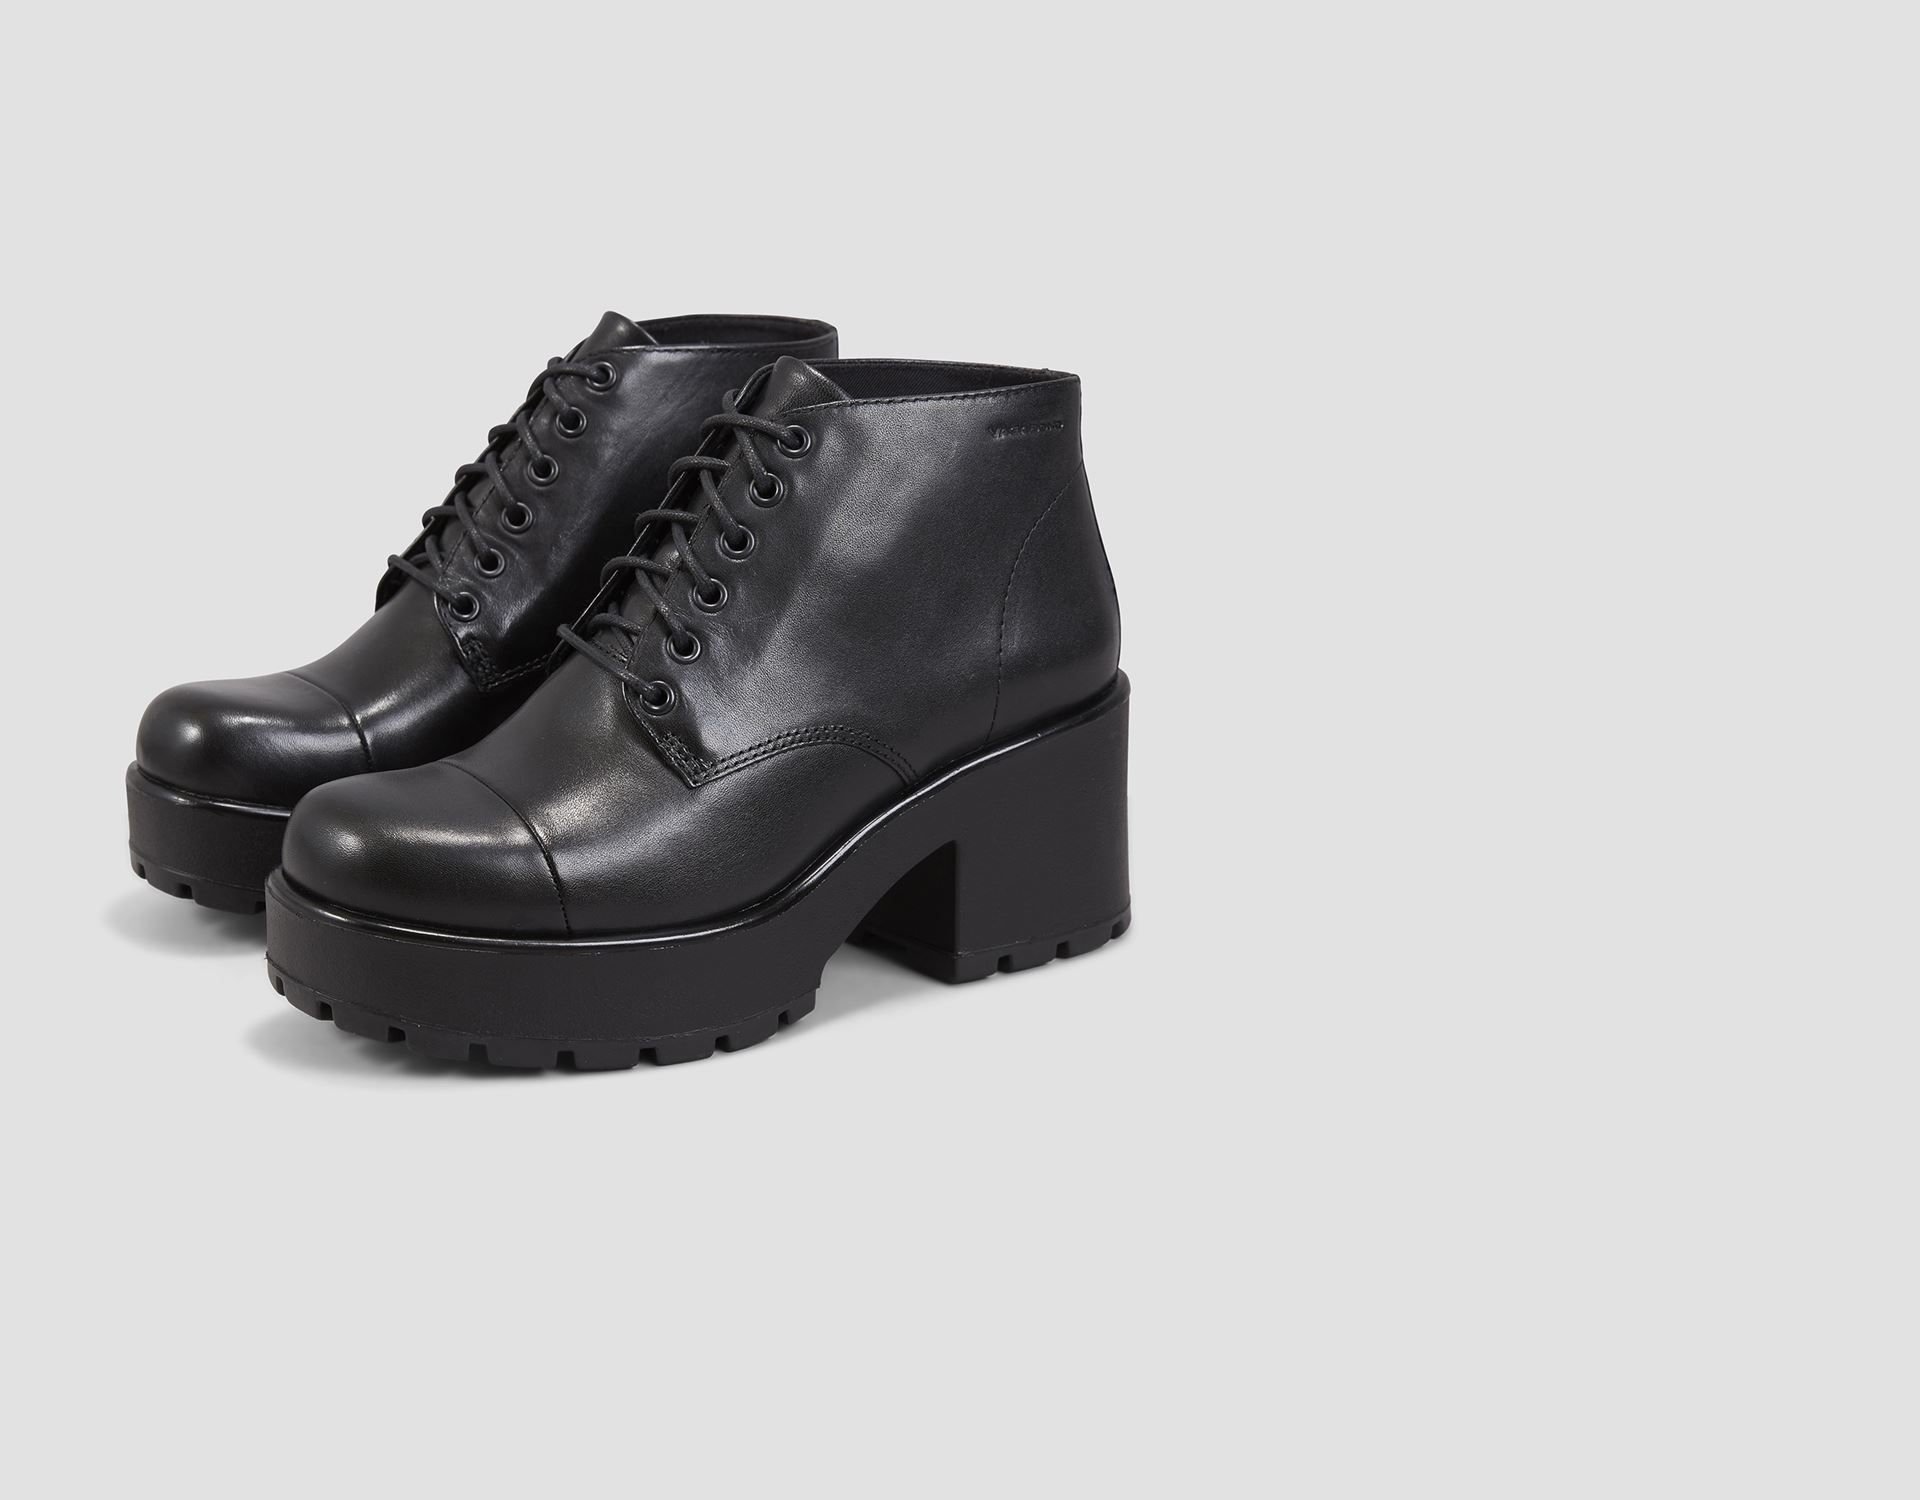 Vagabond DIOON | Boots, Lace up ankle boots, Black leather